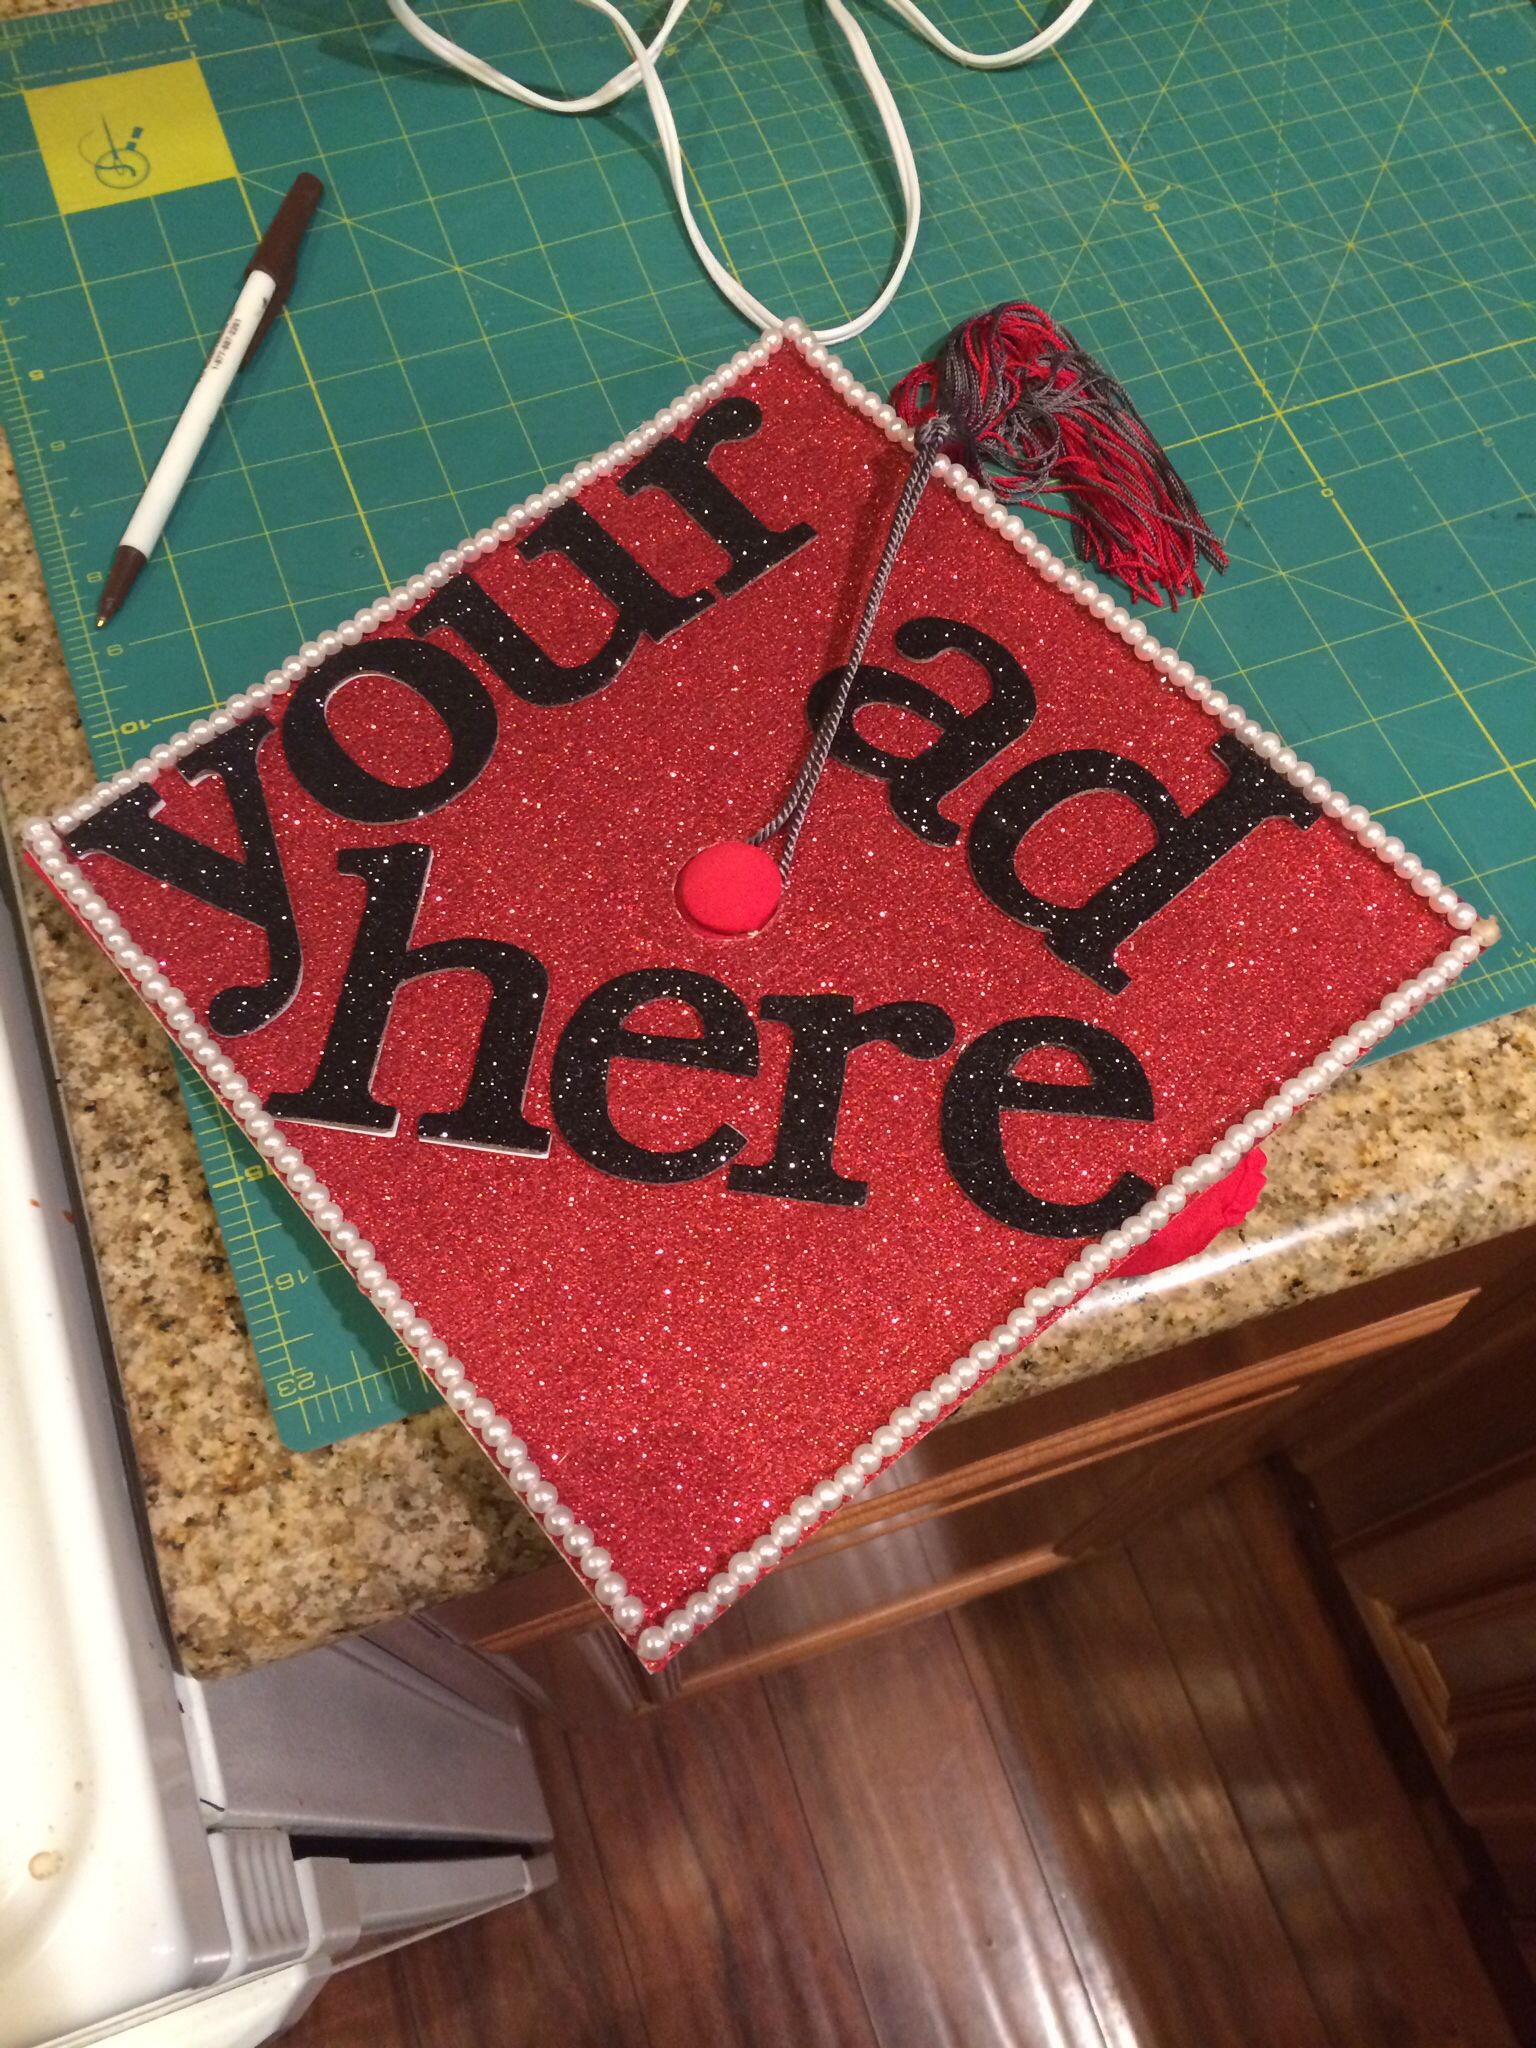 Decorated my graduation cap Im an advertising major and I